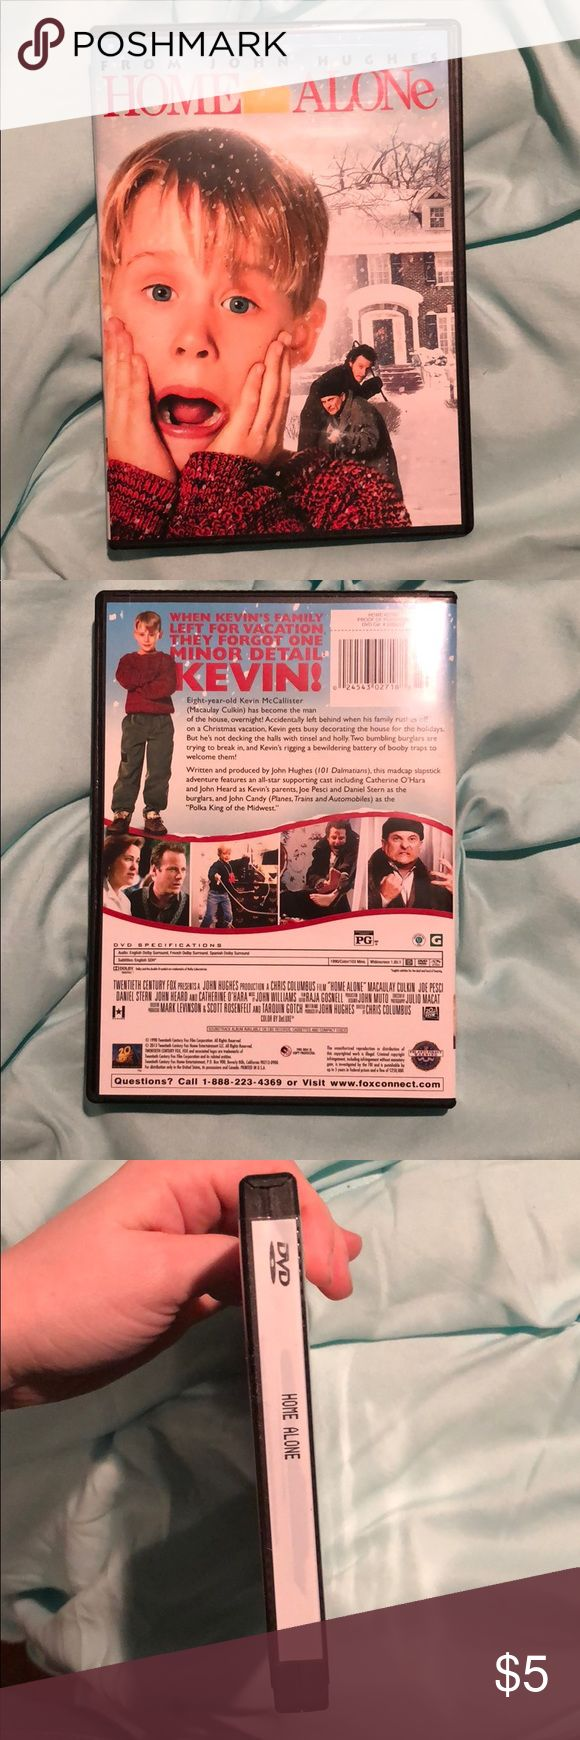 Brand New Home Alone DVD Excellent condition! Never been opened or watched DVD Other